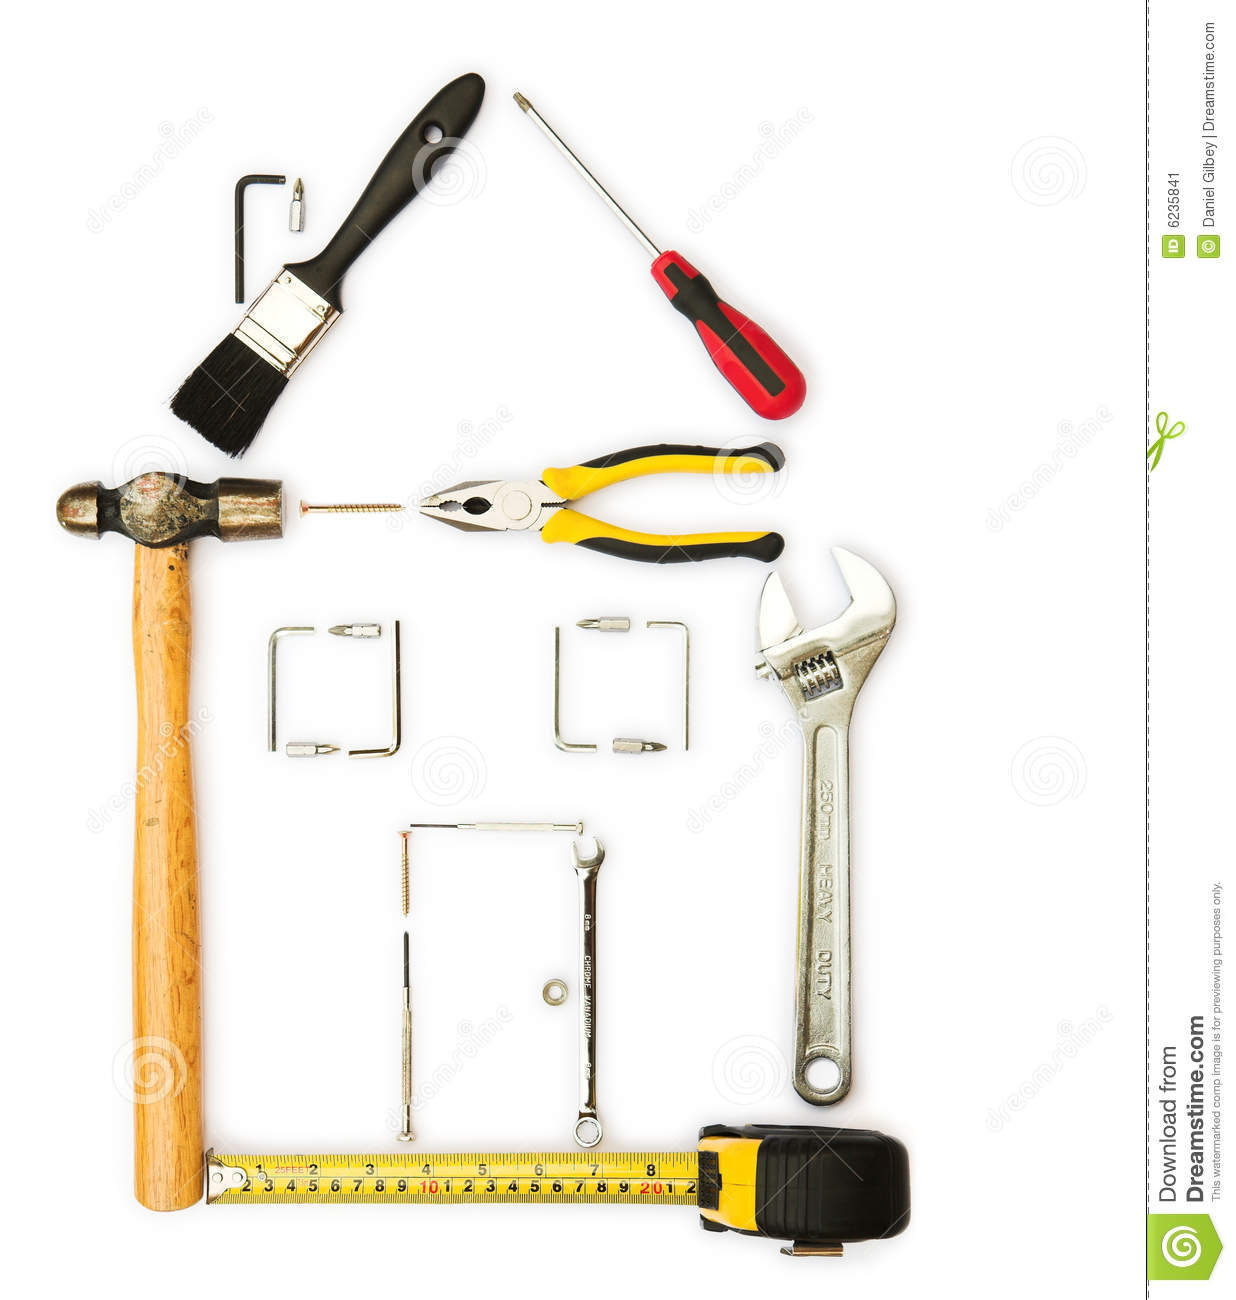 Home improvement stock image image 6235841 for A to z home improvements